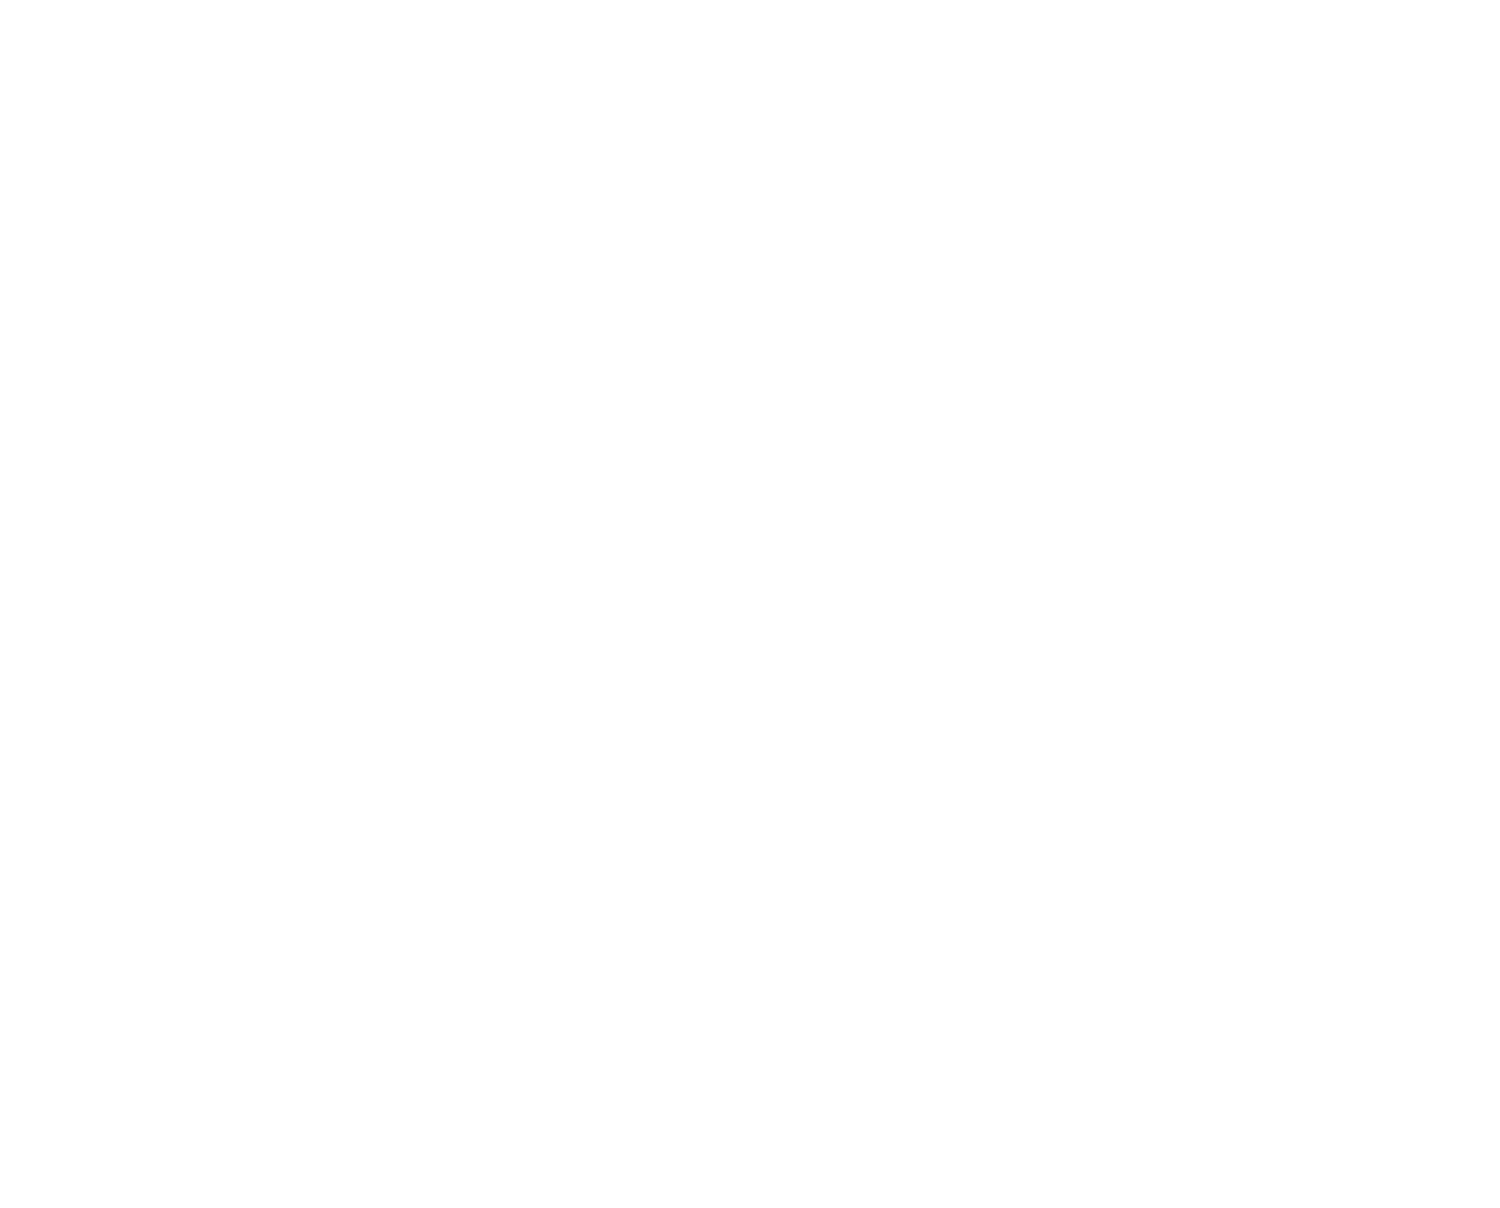 EastCoast CoPACKING